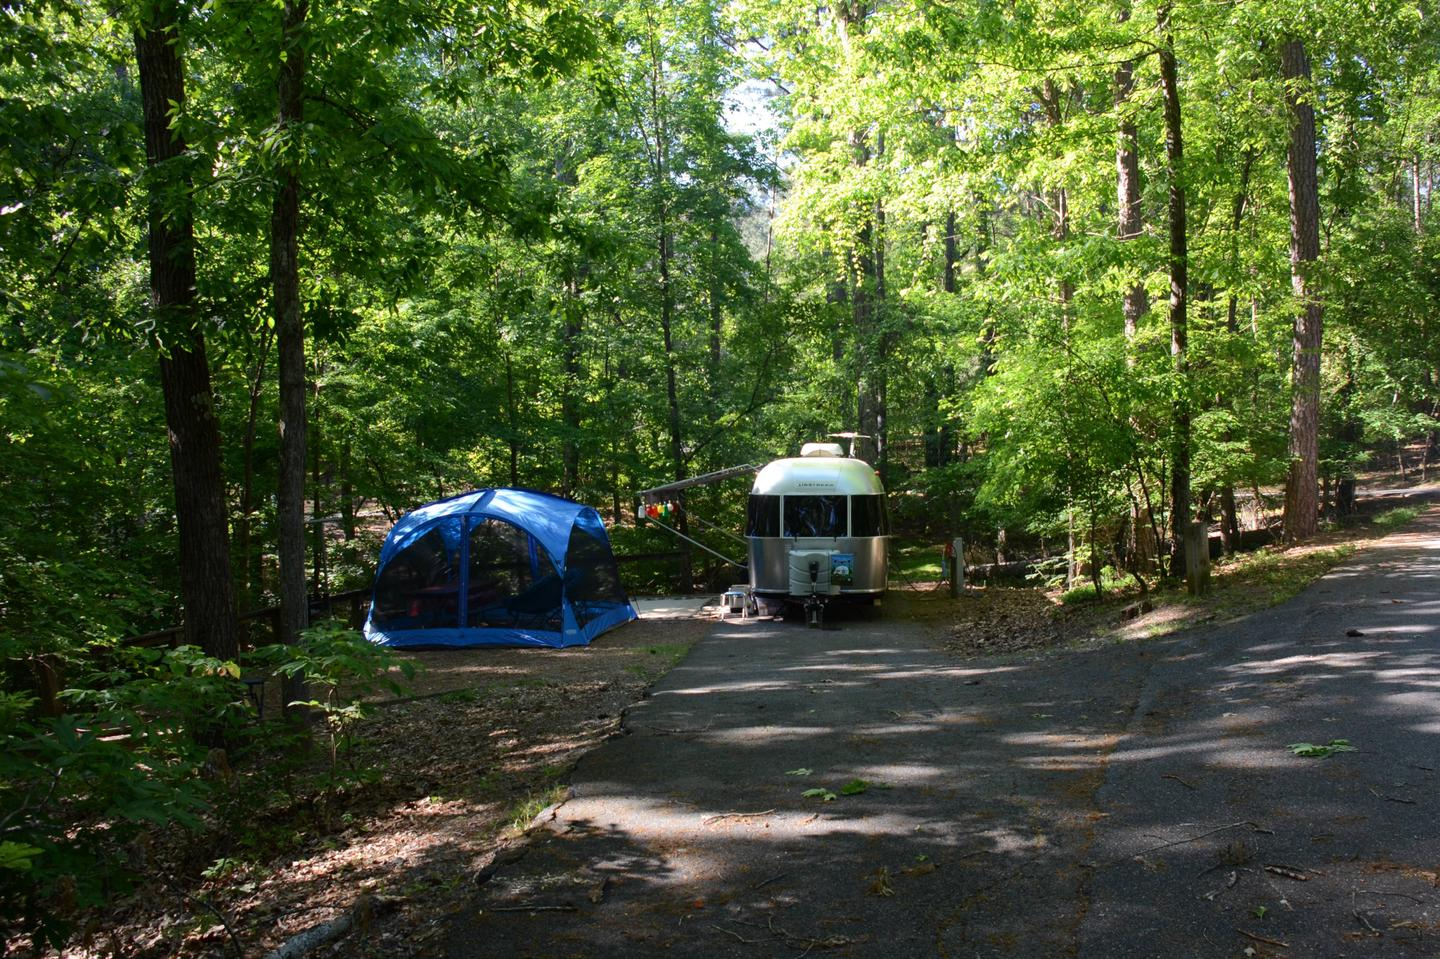 Driveway entrance angle, utilities-side clearance, awning-side clearance.McKinney Campground, campsite 14.